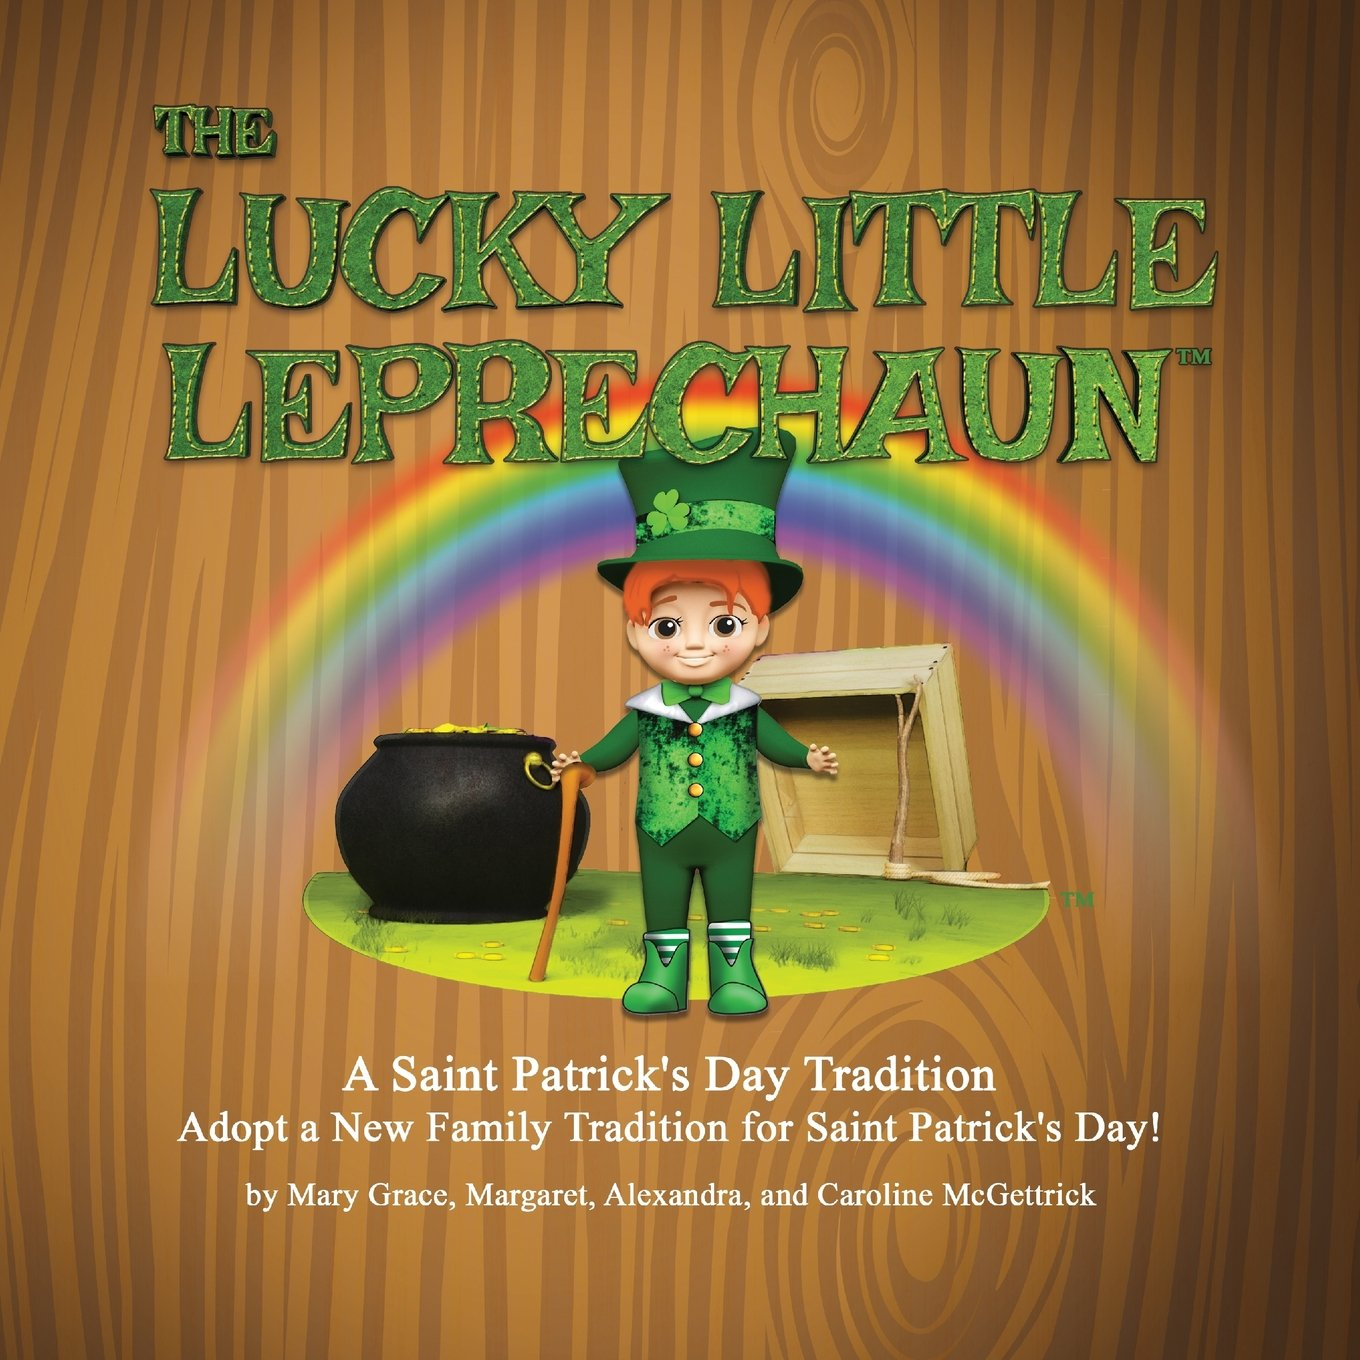 The Lucky Little Leprechaun: A Saint Patrick's Day Tradition